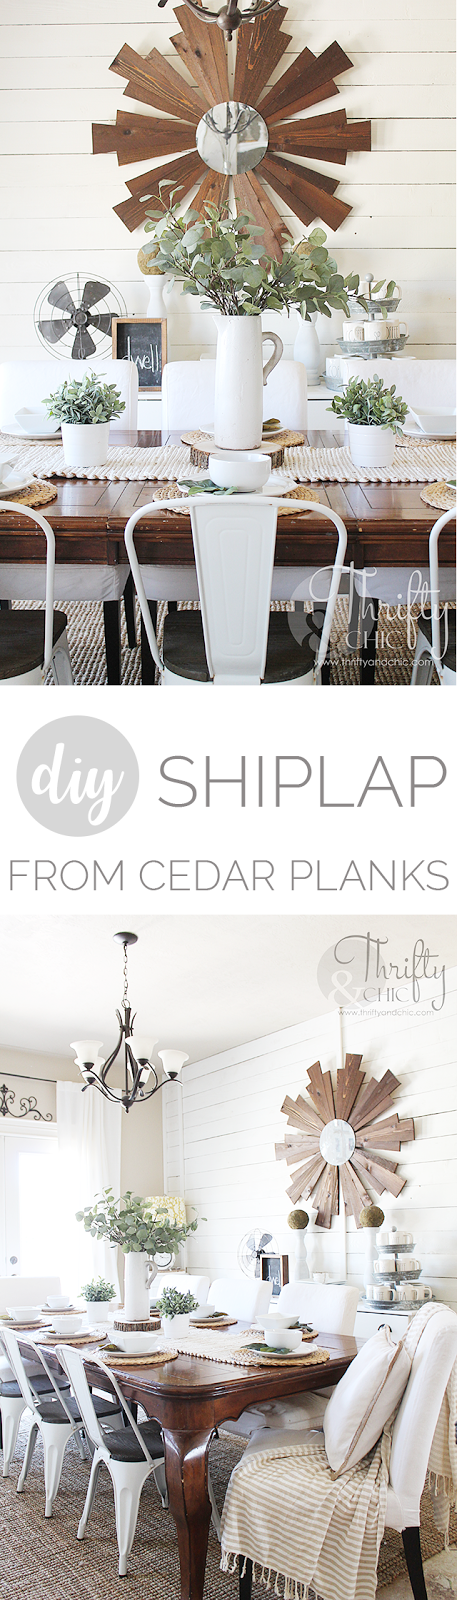 DIY shiplap wall tutorial. Shiplap made from cedar planks. Dining room farmhouse decor and decorating ideas. Fixer upper style dining room